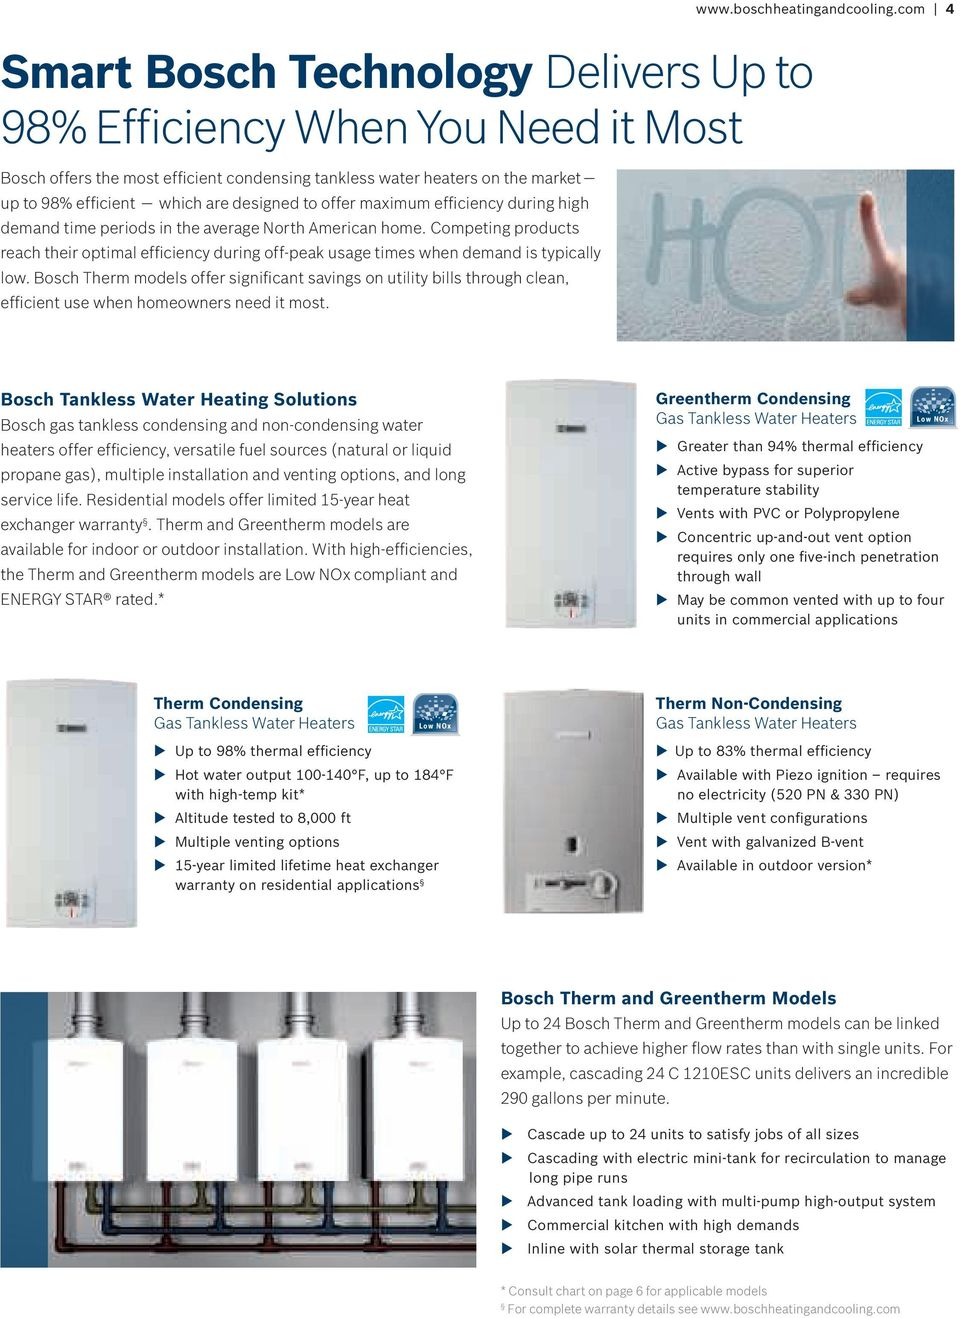 Tankless Water Heating Solutions Residential and Commercial ... on cover for water heater, motor for water heater, wire for water heater, exhaust for water heater, plug for water heater, timer for water heater, cabinet for water heater, expansion tank for water heater, regulator for water heater, compressor for water heater, valve for water heater, circuit breaker for water heater, hose for water heater, thermal fuse for water heater, switch for water heater, piping diagram for water heater, coil for water heater, thermostat for water heater, wiring diagram for water pump, thermocouple for water heater,